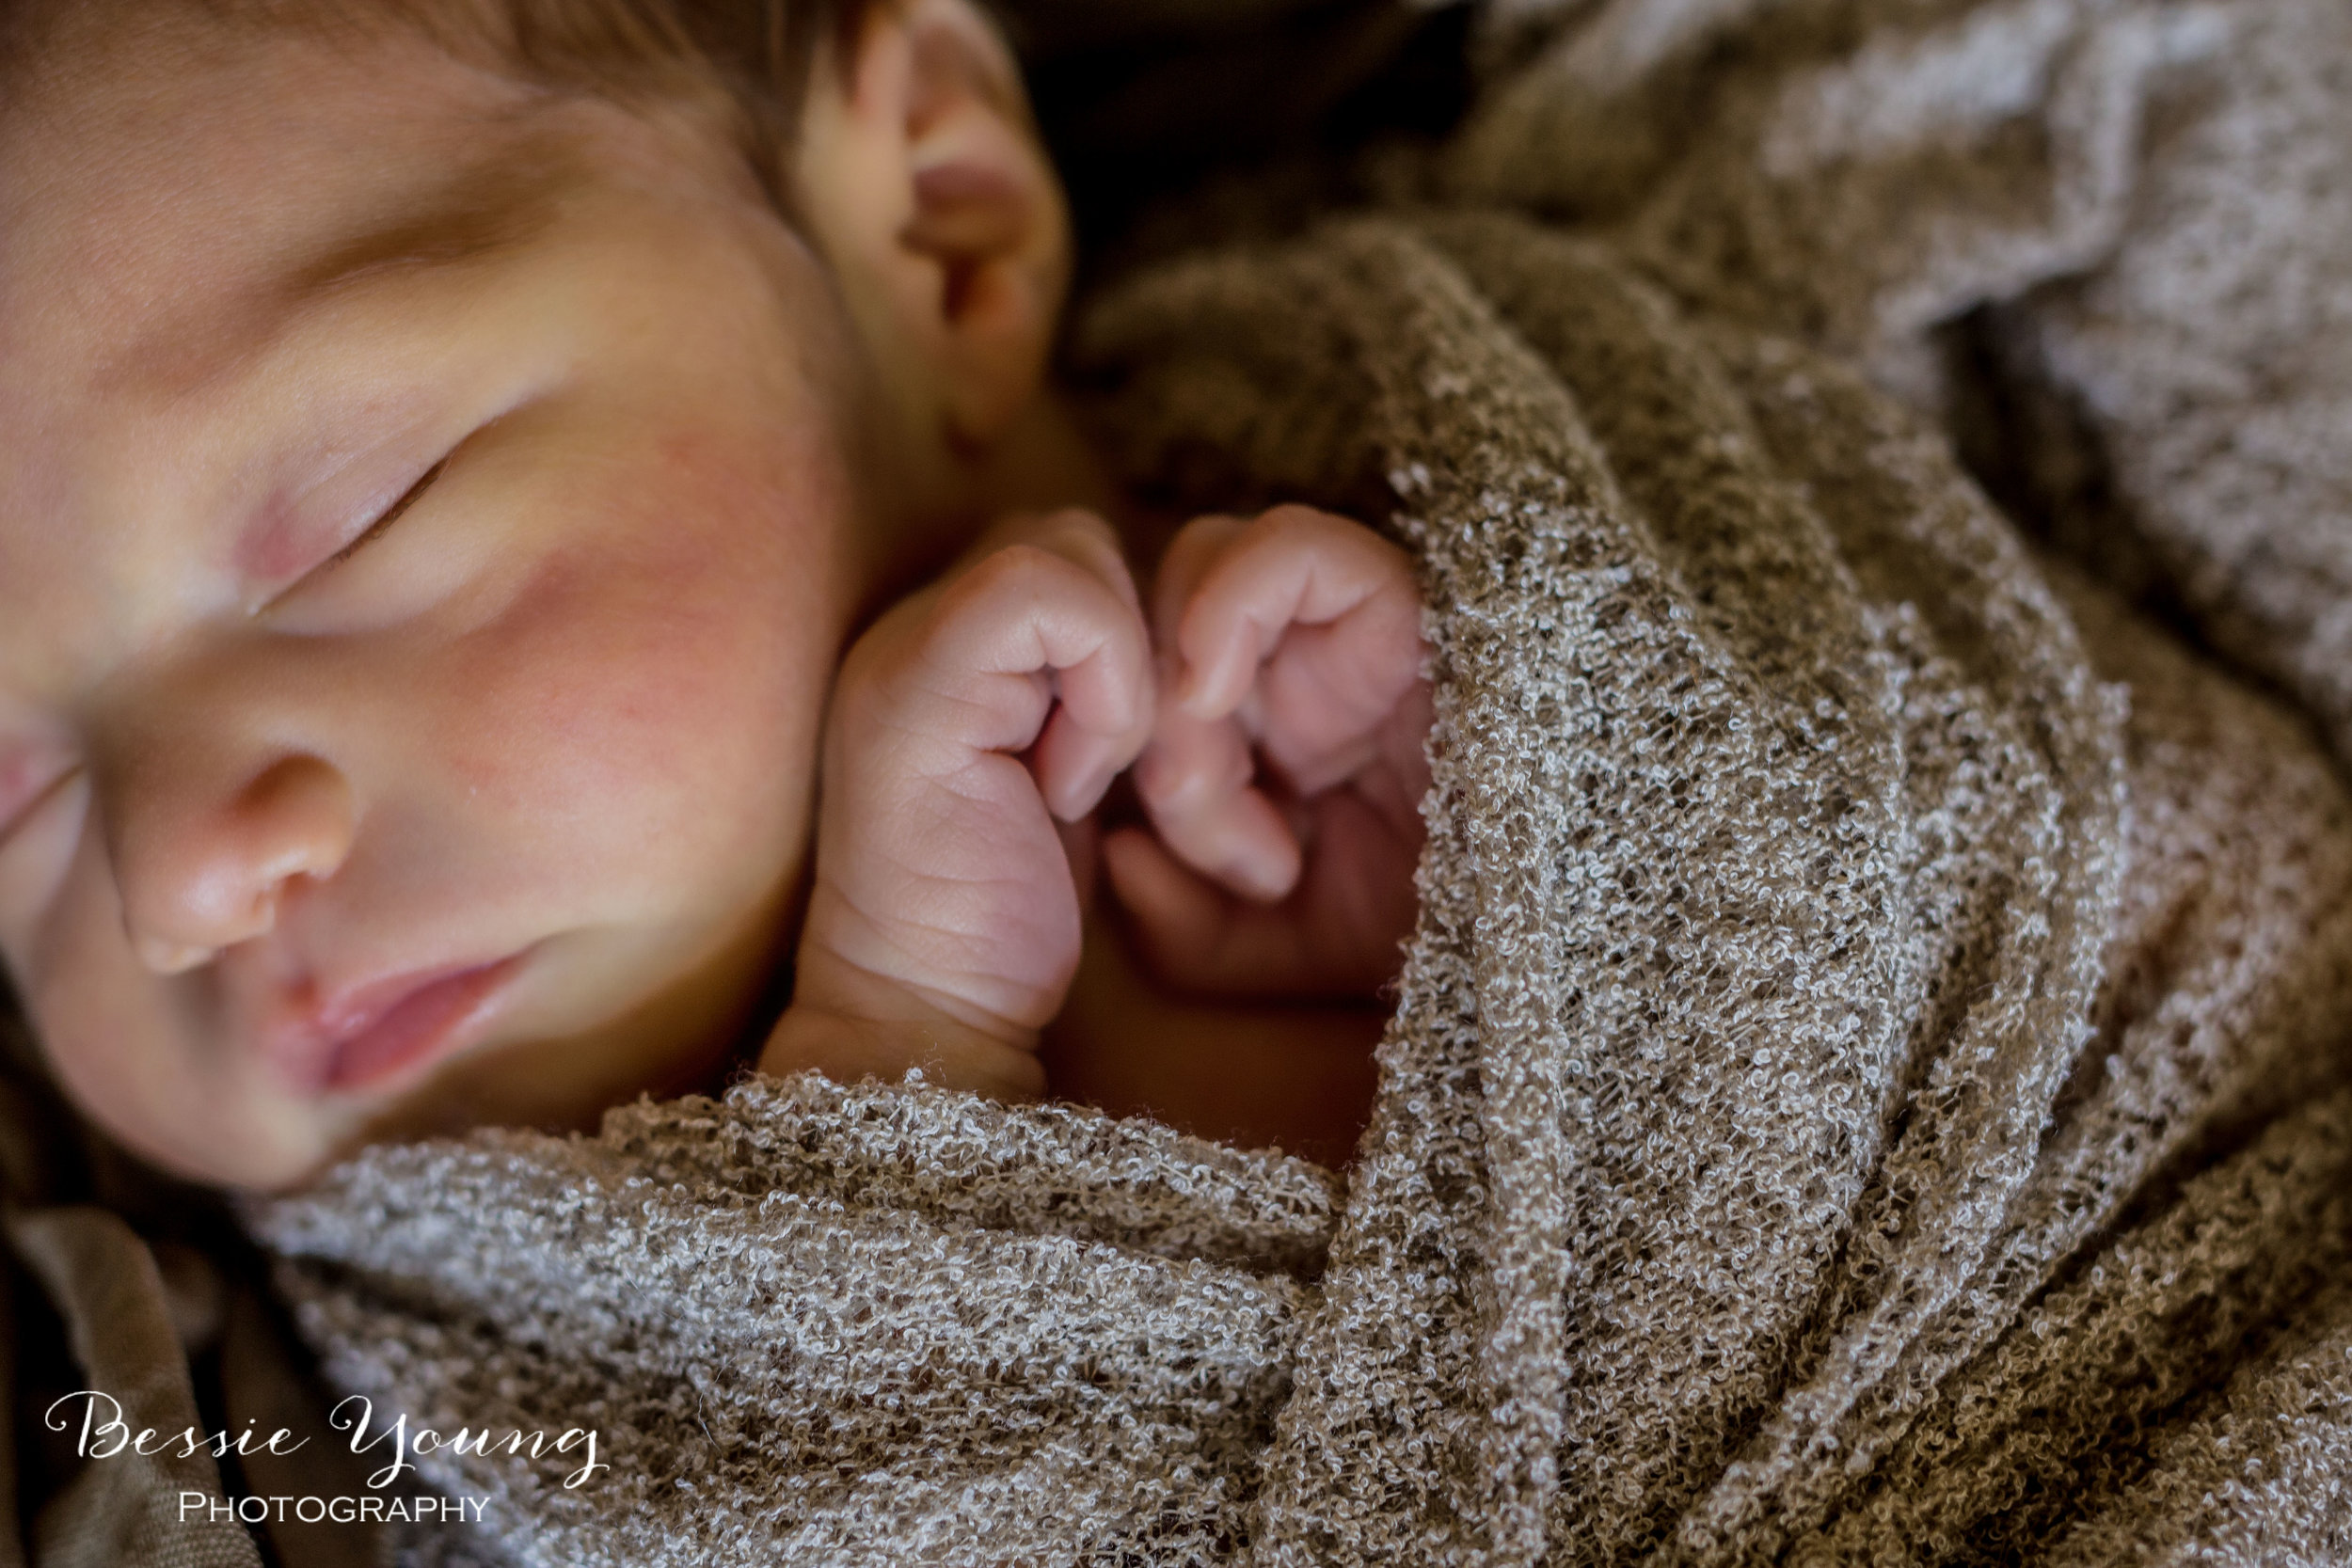 Fresno Newborn Portraits - Mateo - Bessie Young Photography-9.jpg